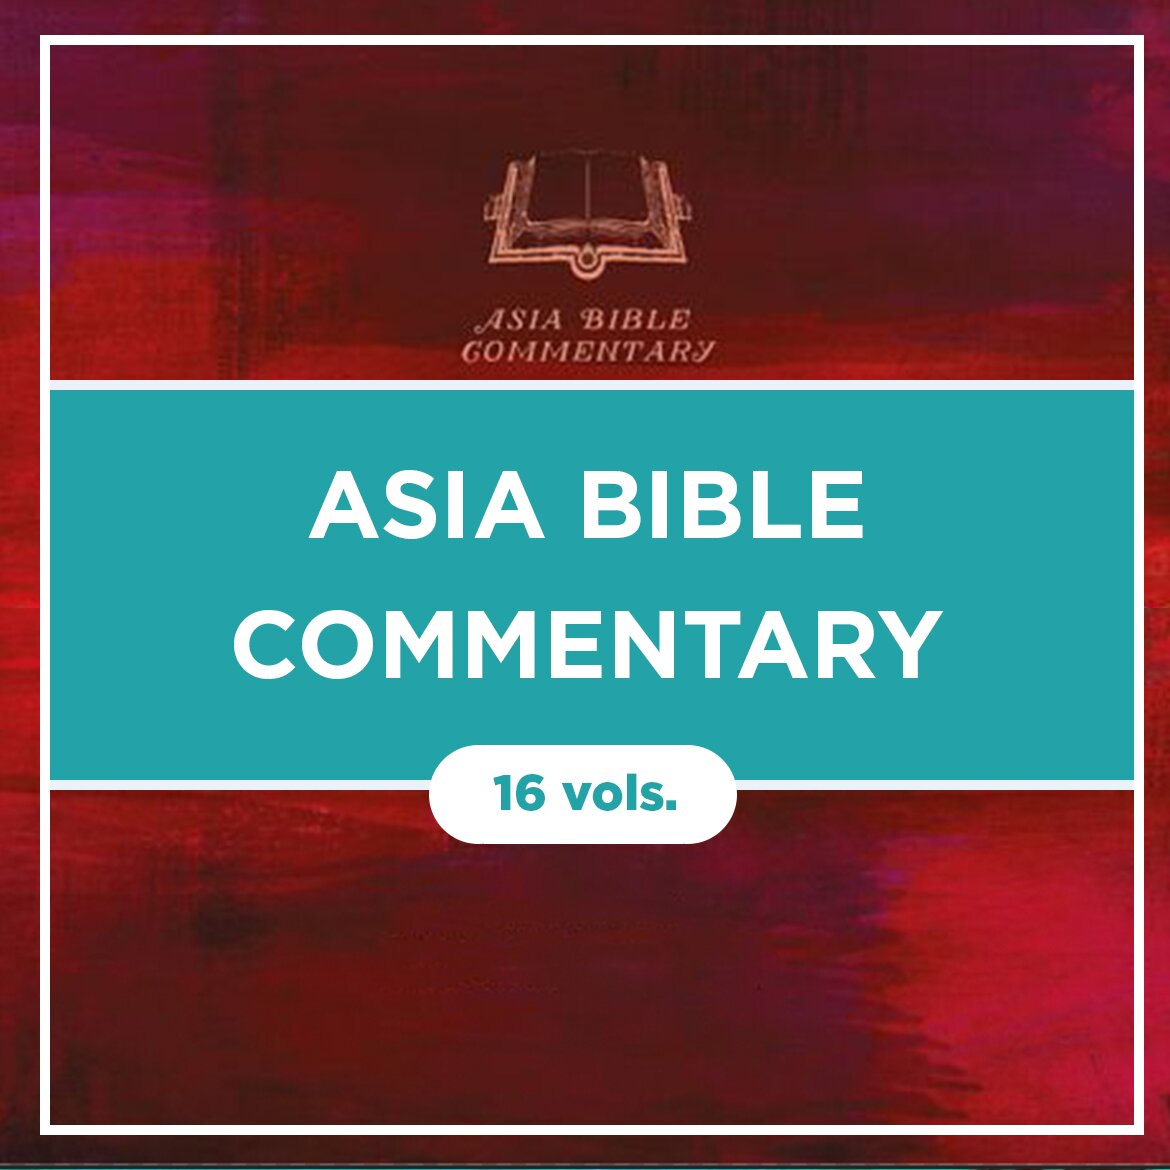 Asia Bible Commentary   ABC (16 vols.)